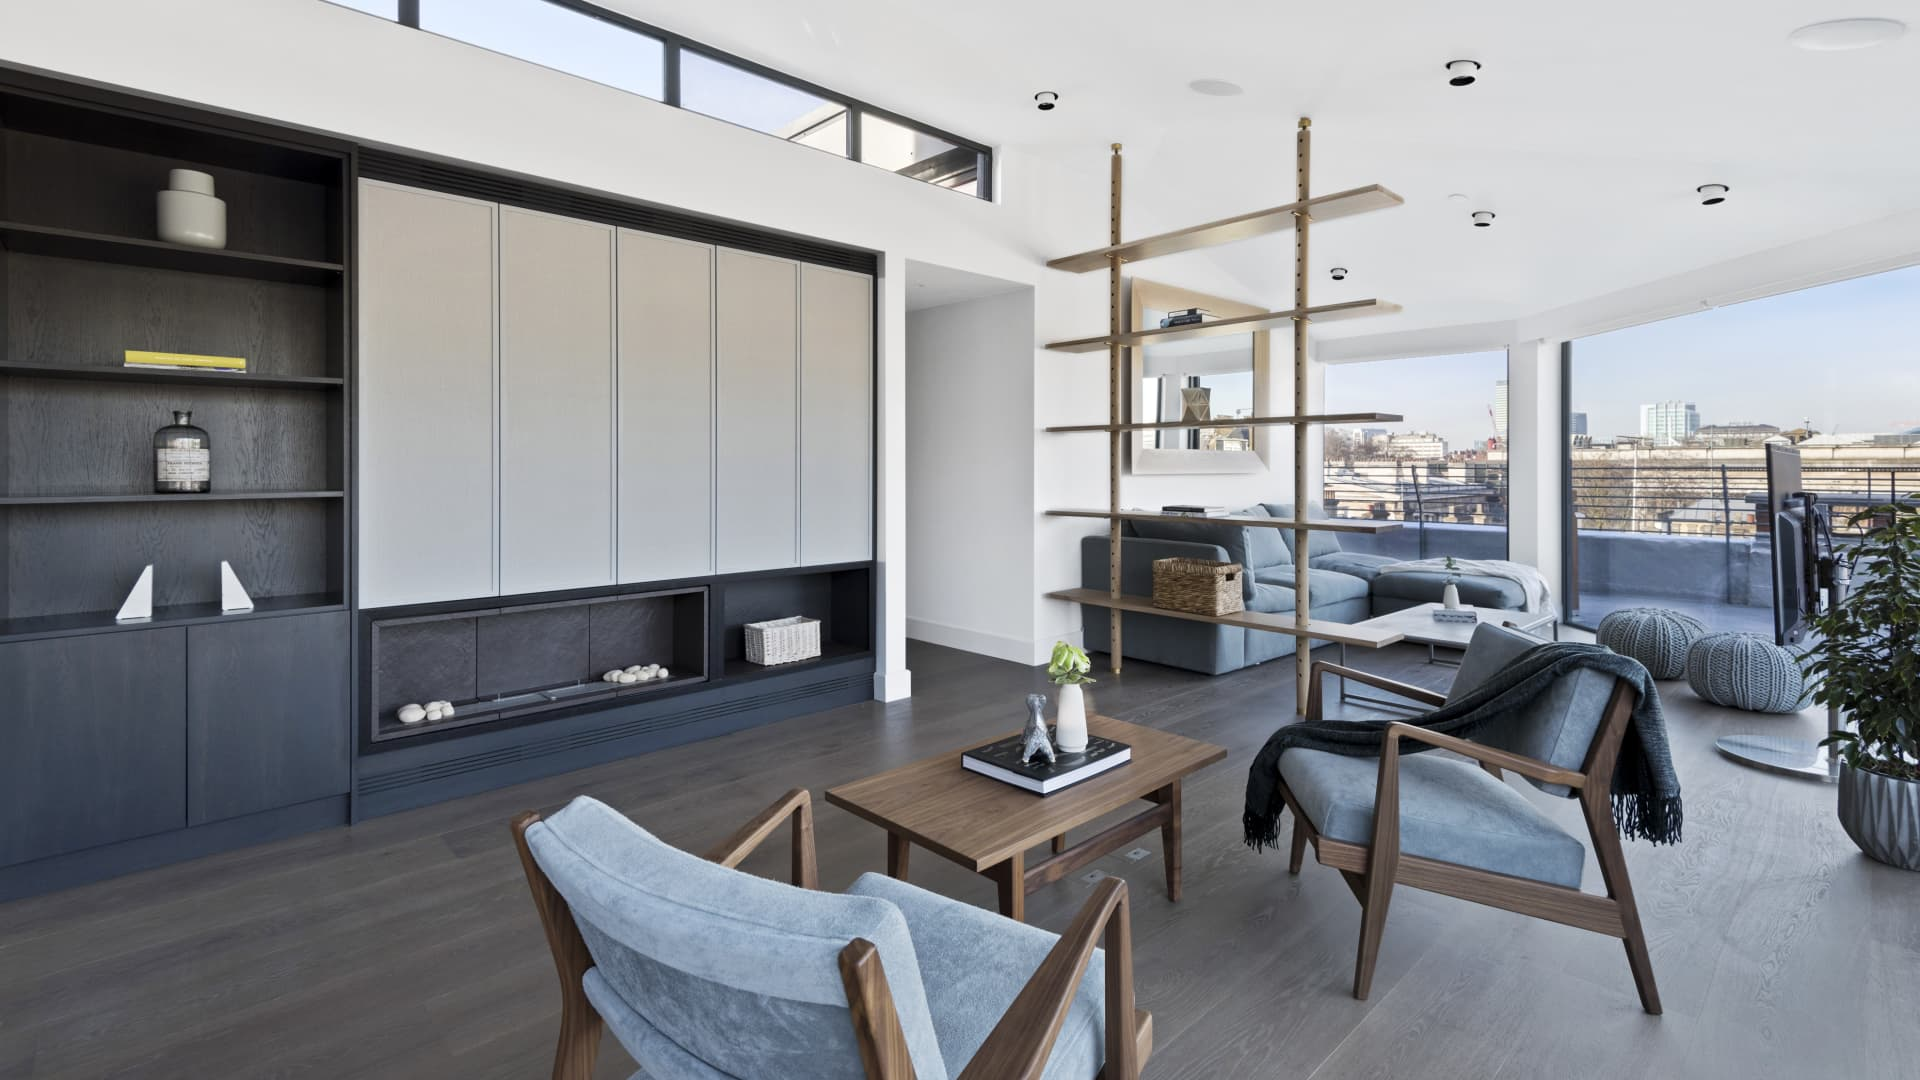 A three-bedroom penthouse in London that is available to rent through Sonder.